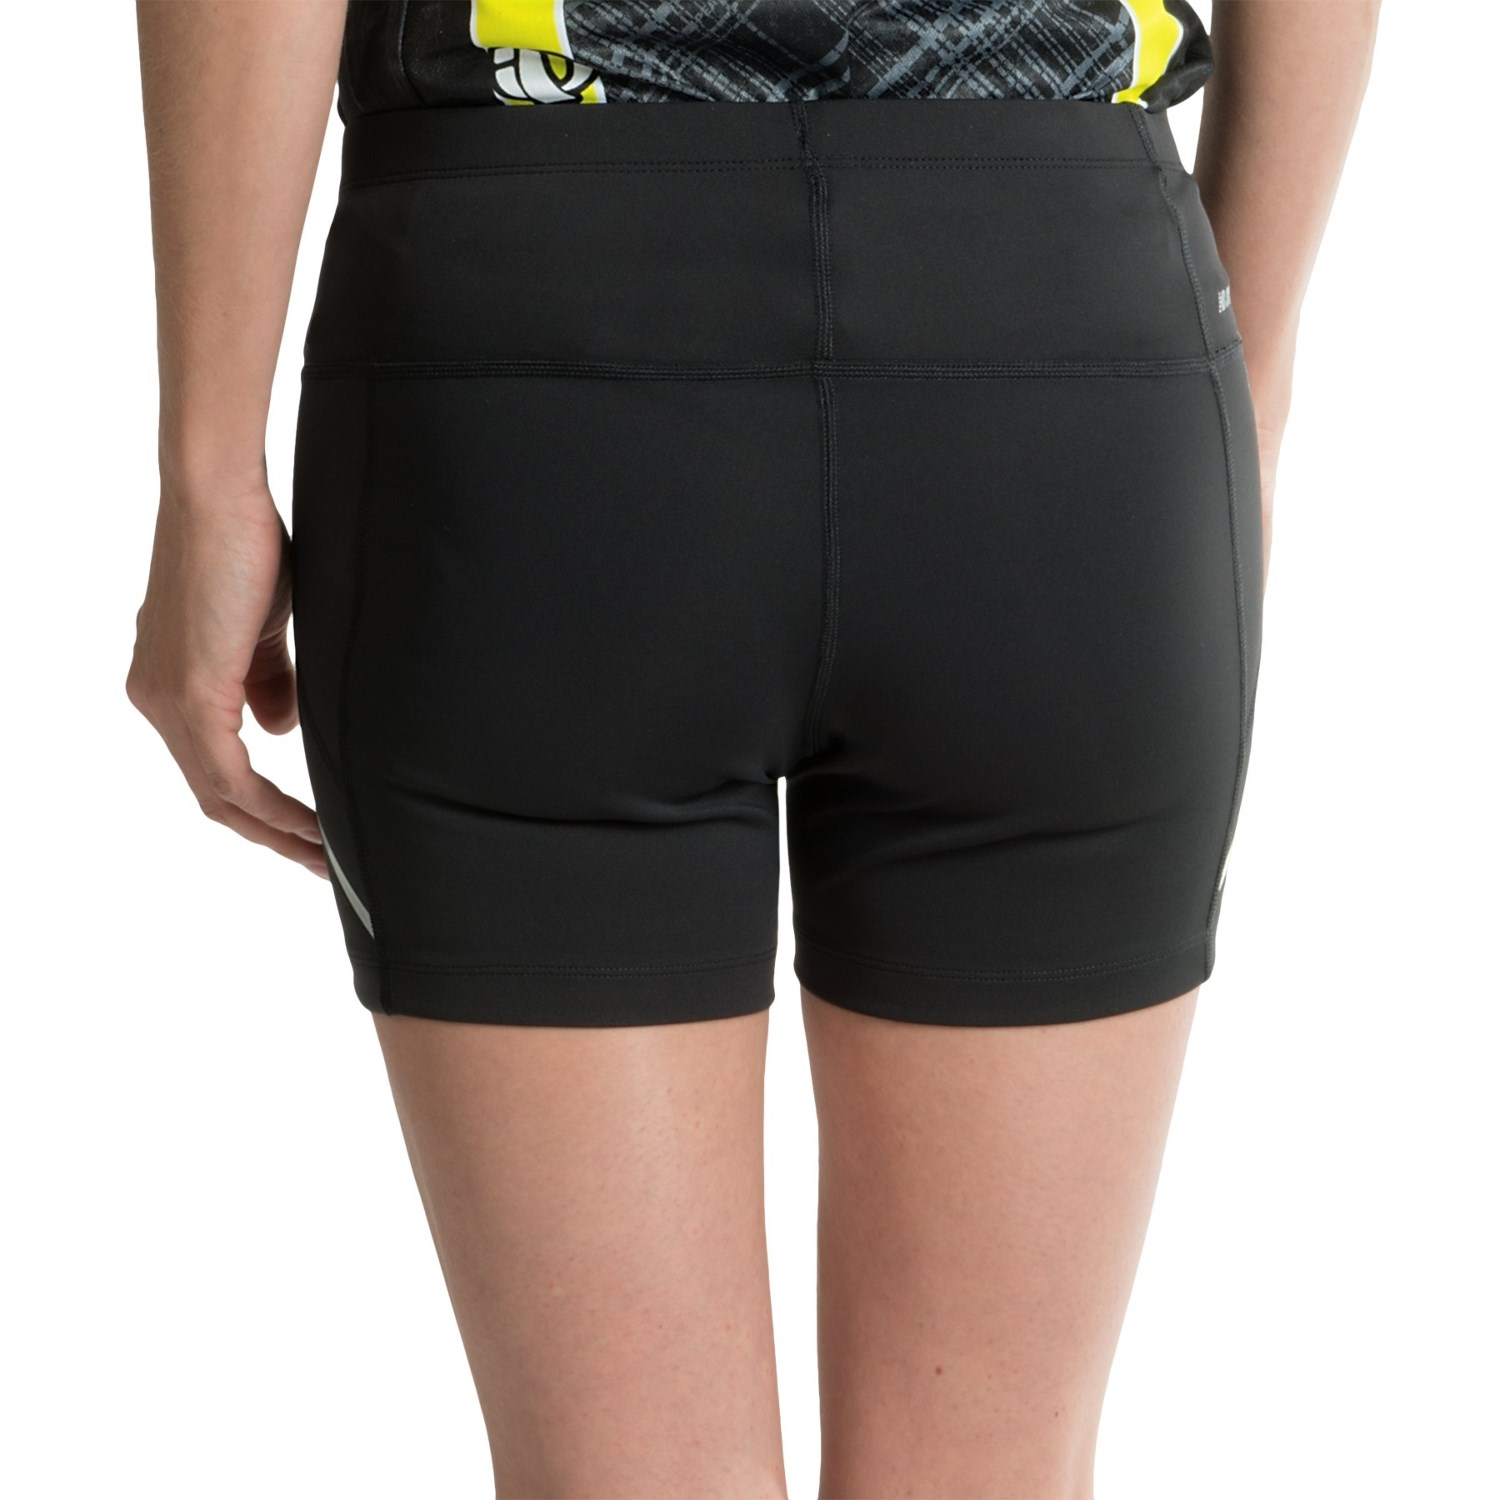 Find great deals on eBay for fitted running shorts. Shop with confidence.